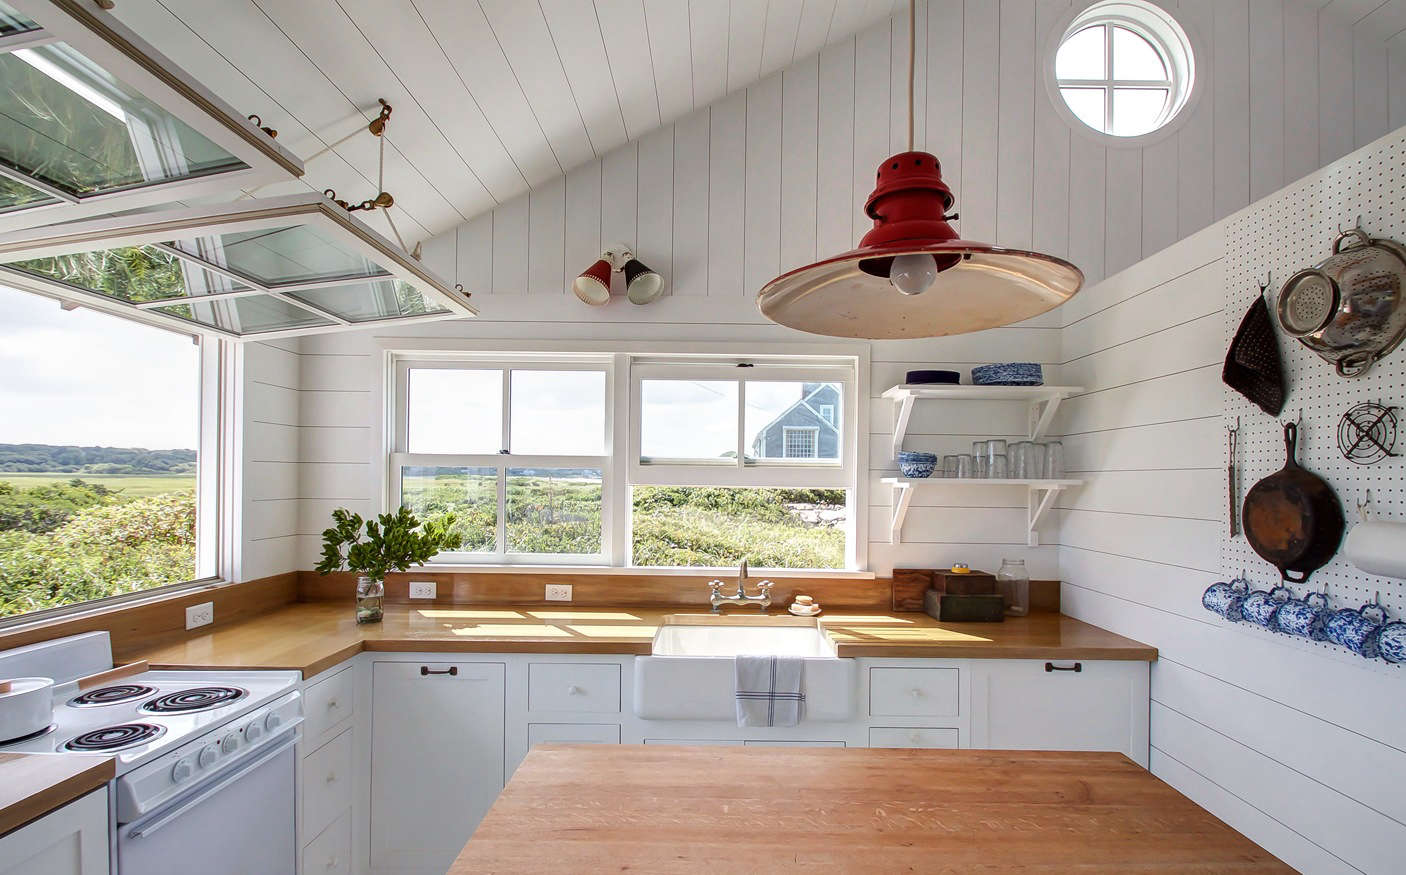 The light fixtures are all vintage; a double sconce from Amsterdam and a red barn light from 1st Dibs (for something similar, look to Barn Light Electric). The countertops are oak finished with a marine varnish. On the white electric range sits a Kaiko One-Handle Pan by Japanese designer Makoto Koizumi.